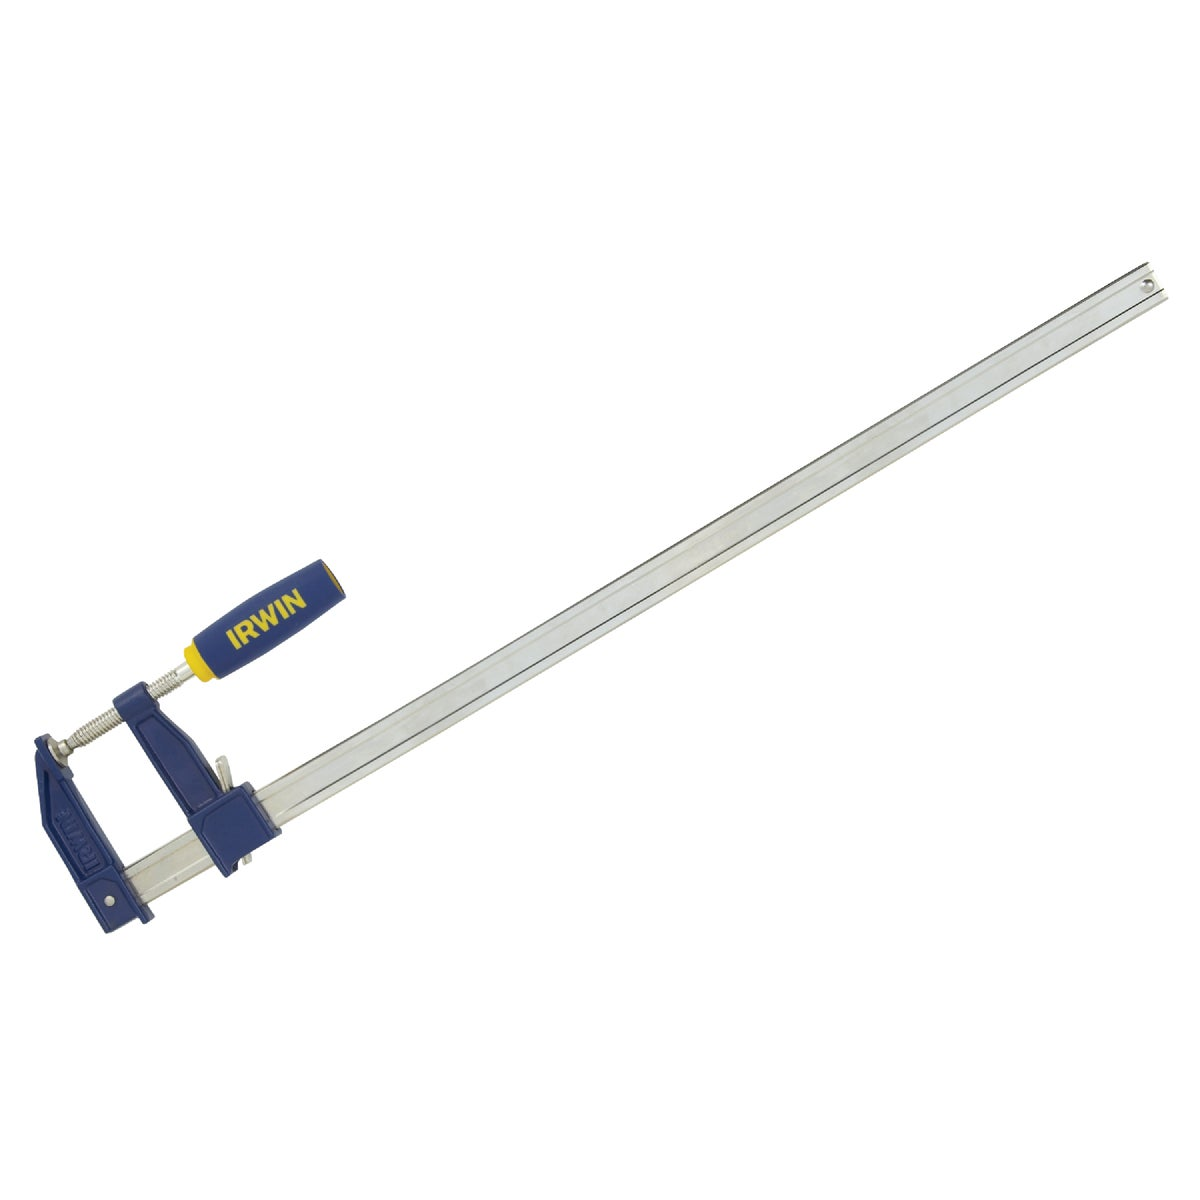 "24"" CLTCH LOCK BAR CLAMP"